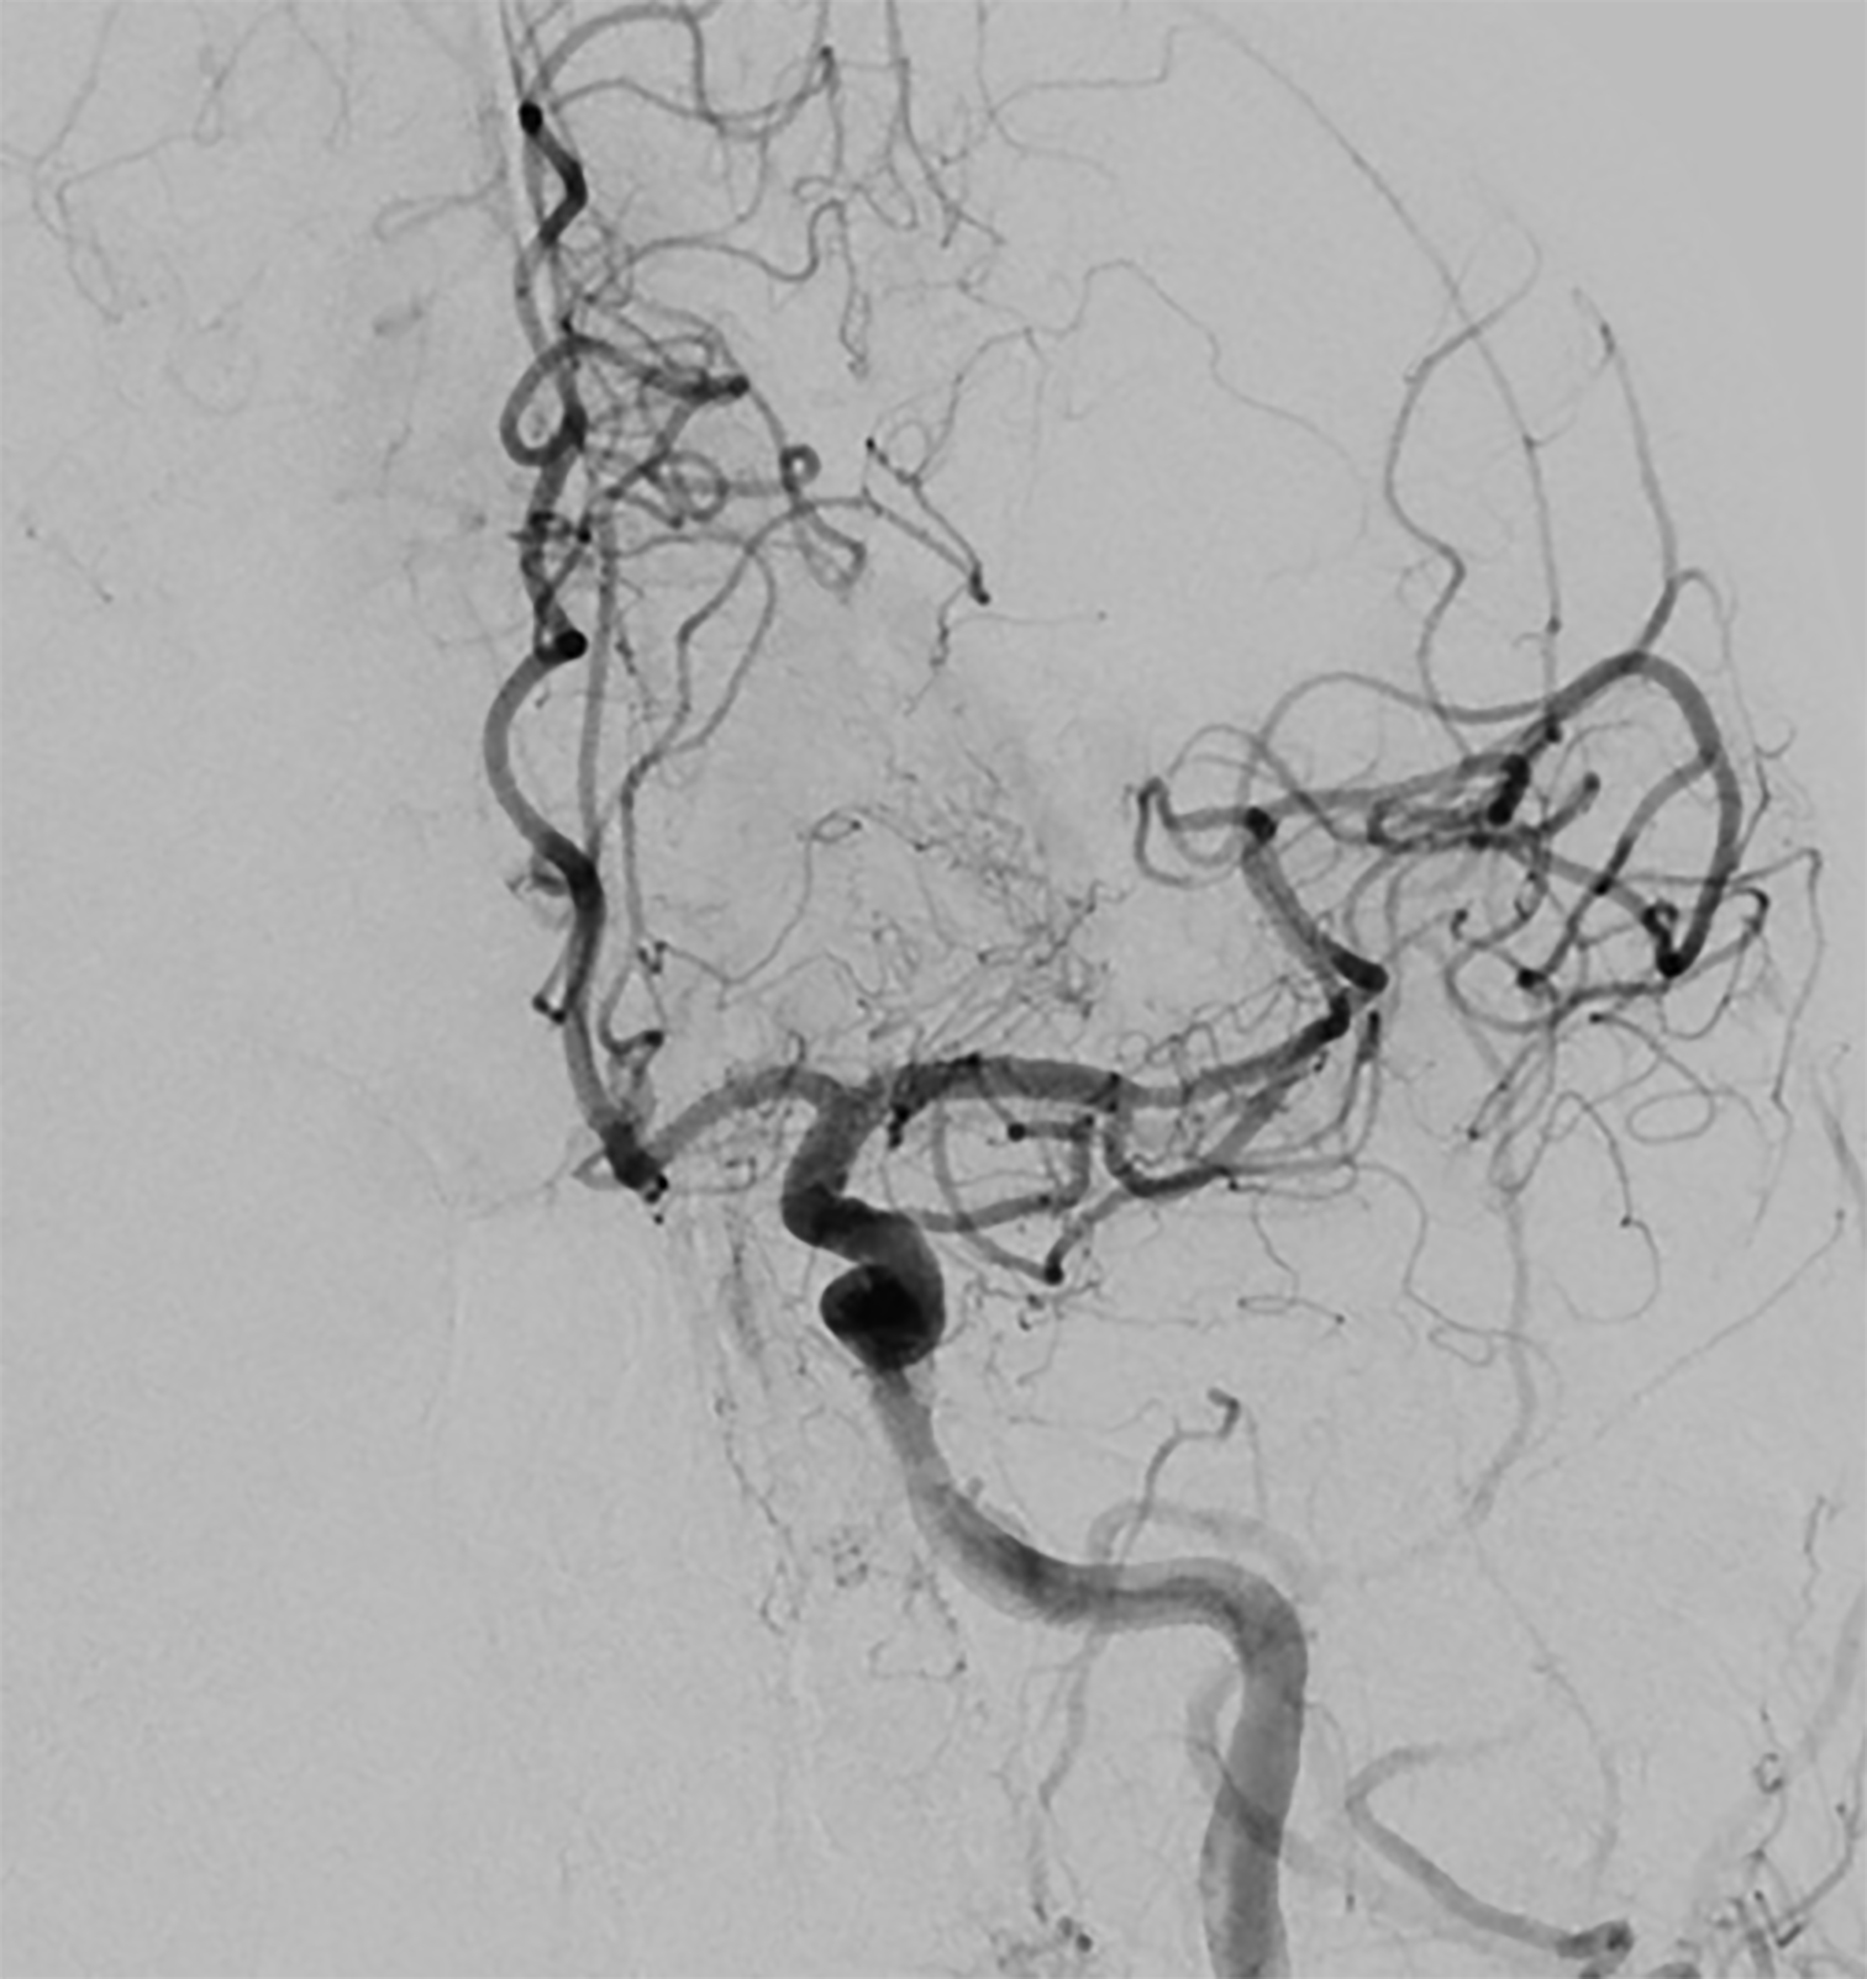 Revascularization of left middle cerebral artery